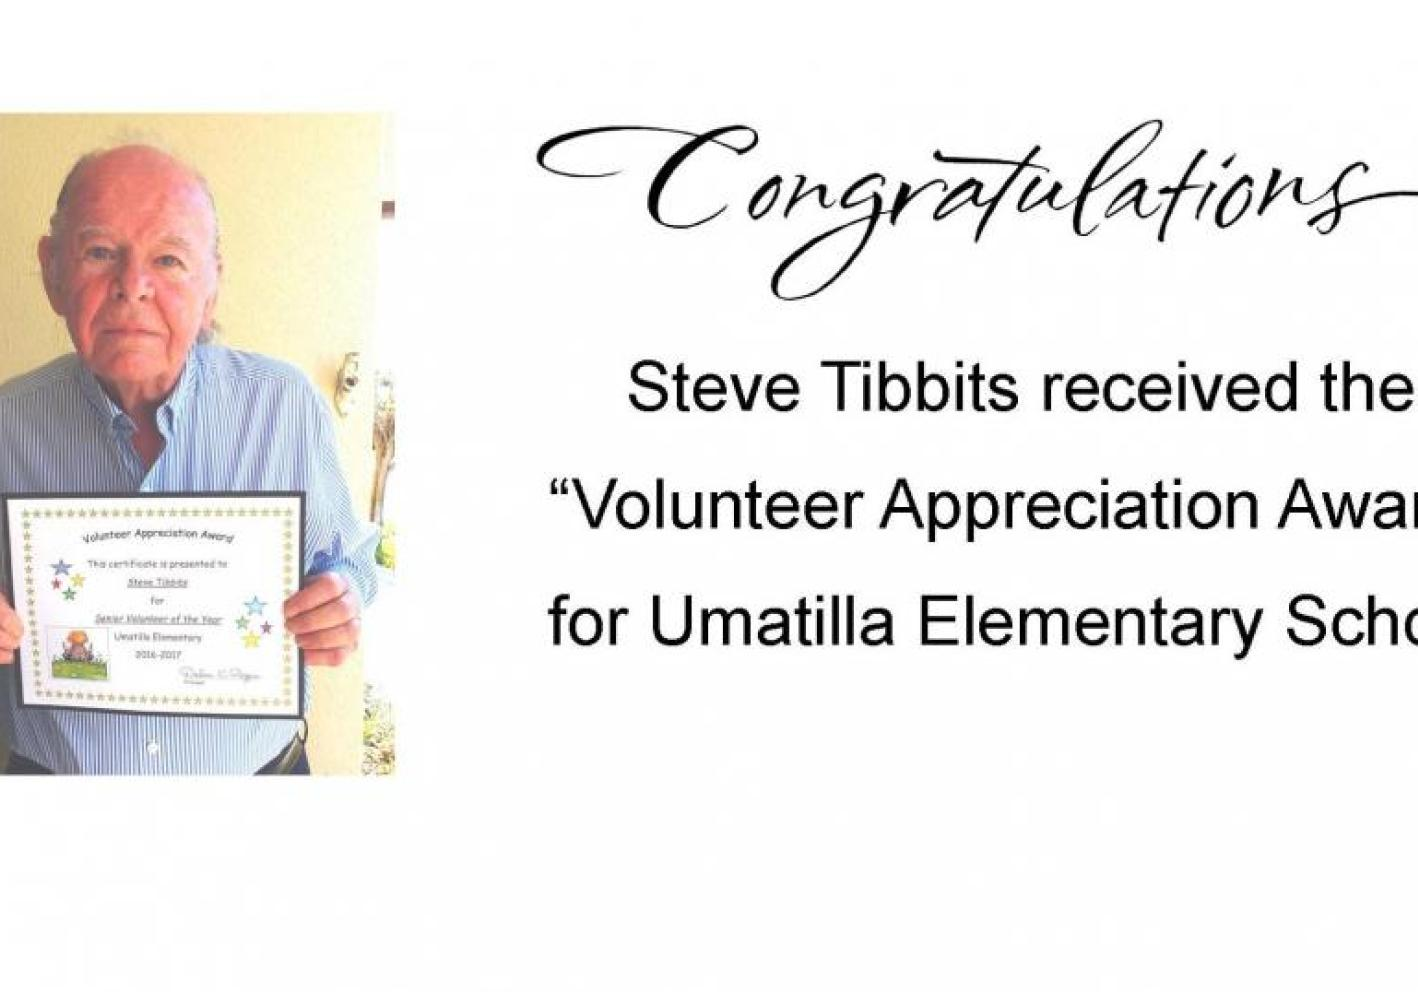 Volunteer Appreciation Award